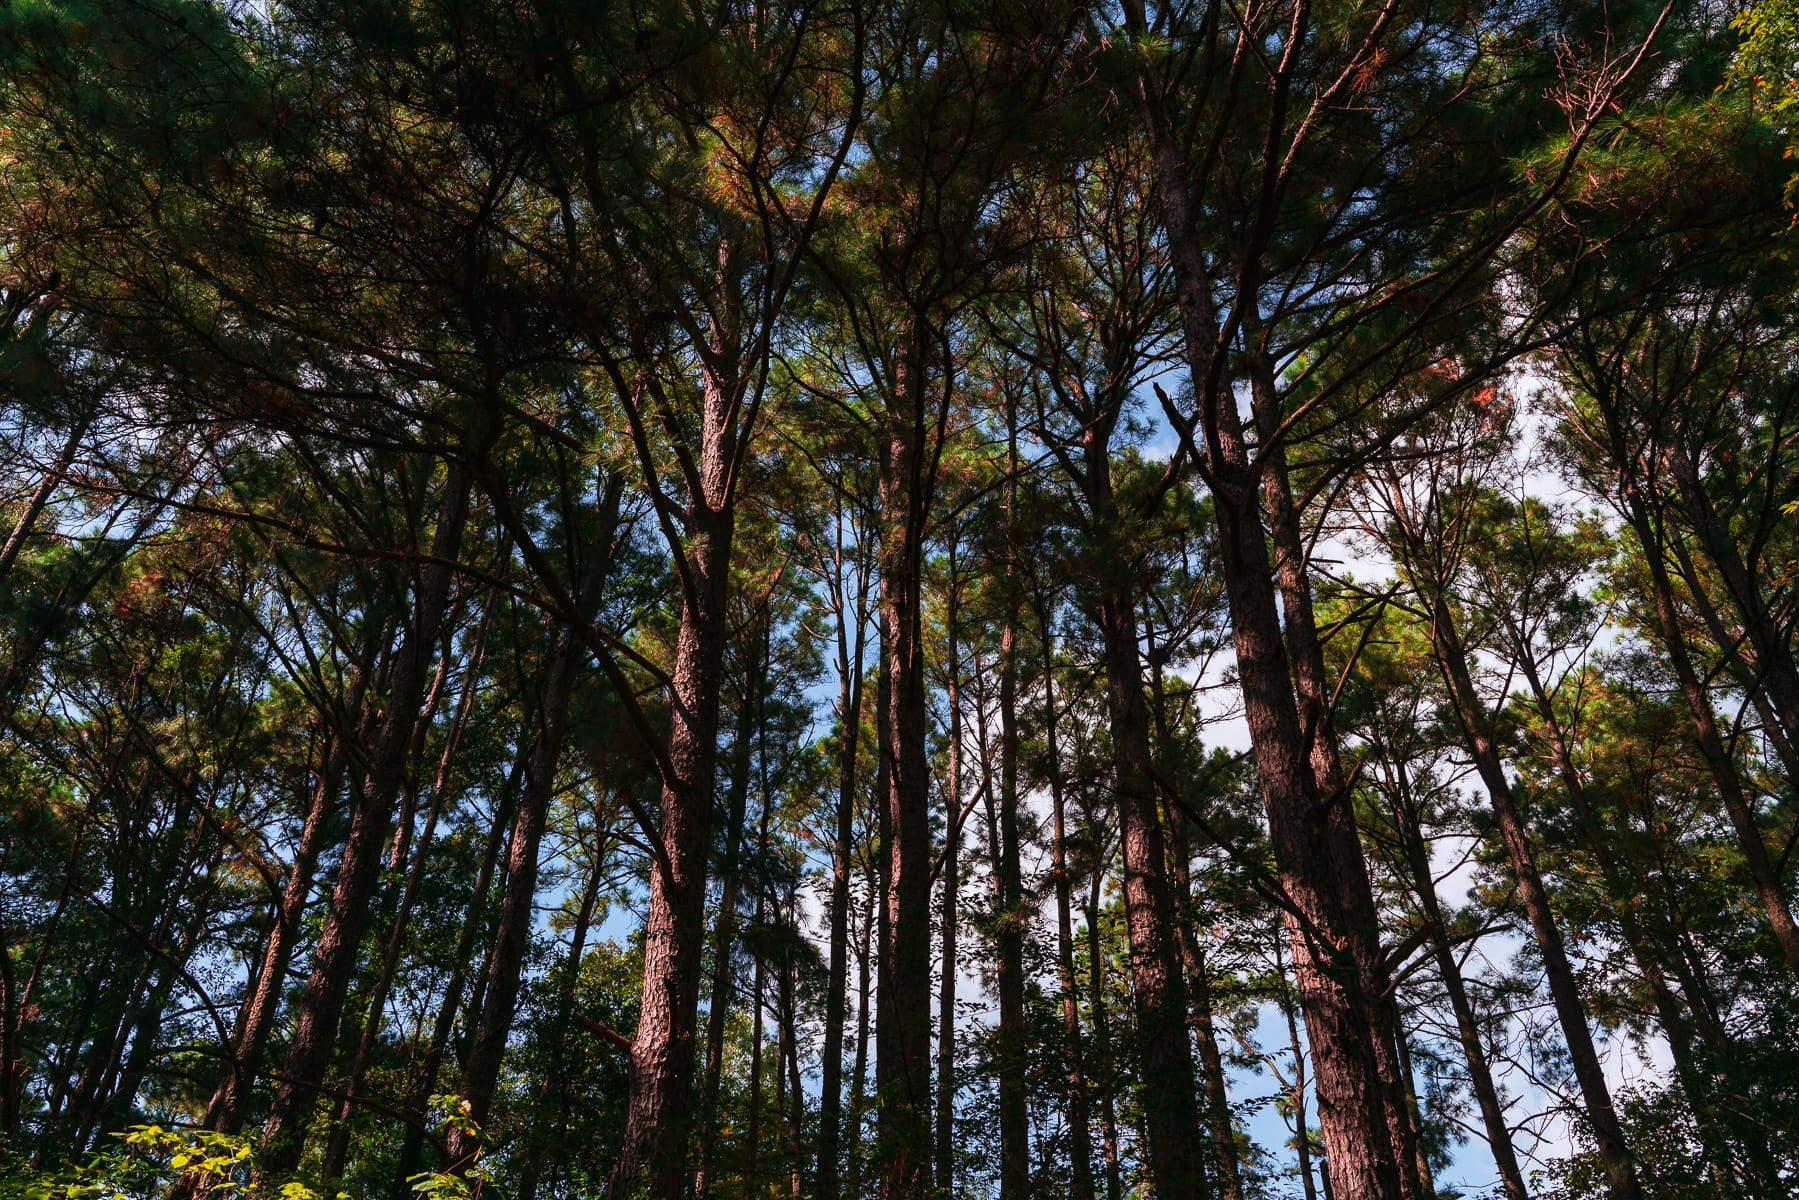 Tall pine trees at East Texas' Martin Creek Lake State Park.